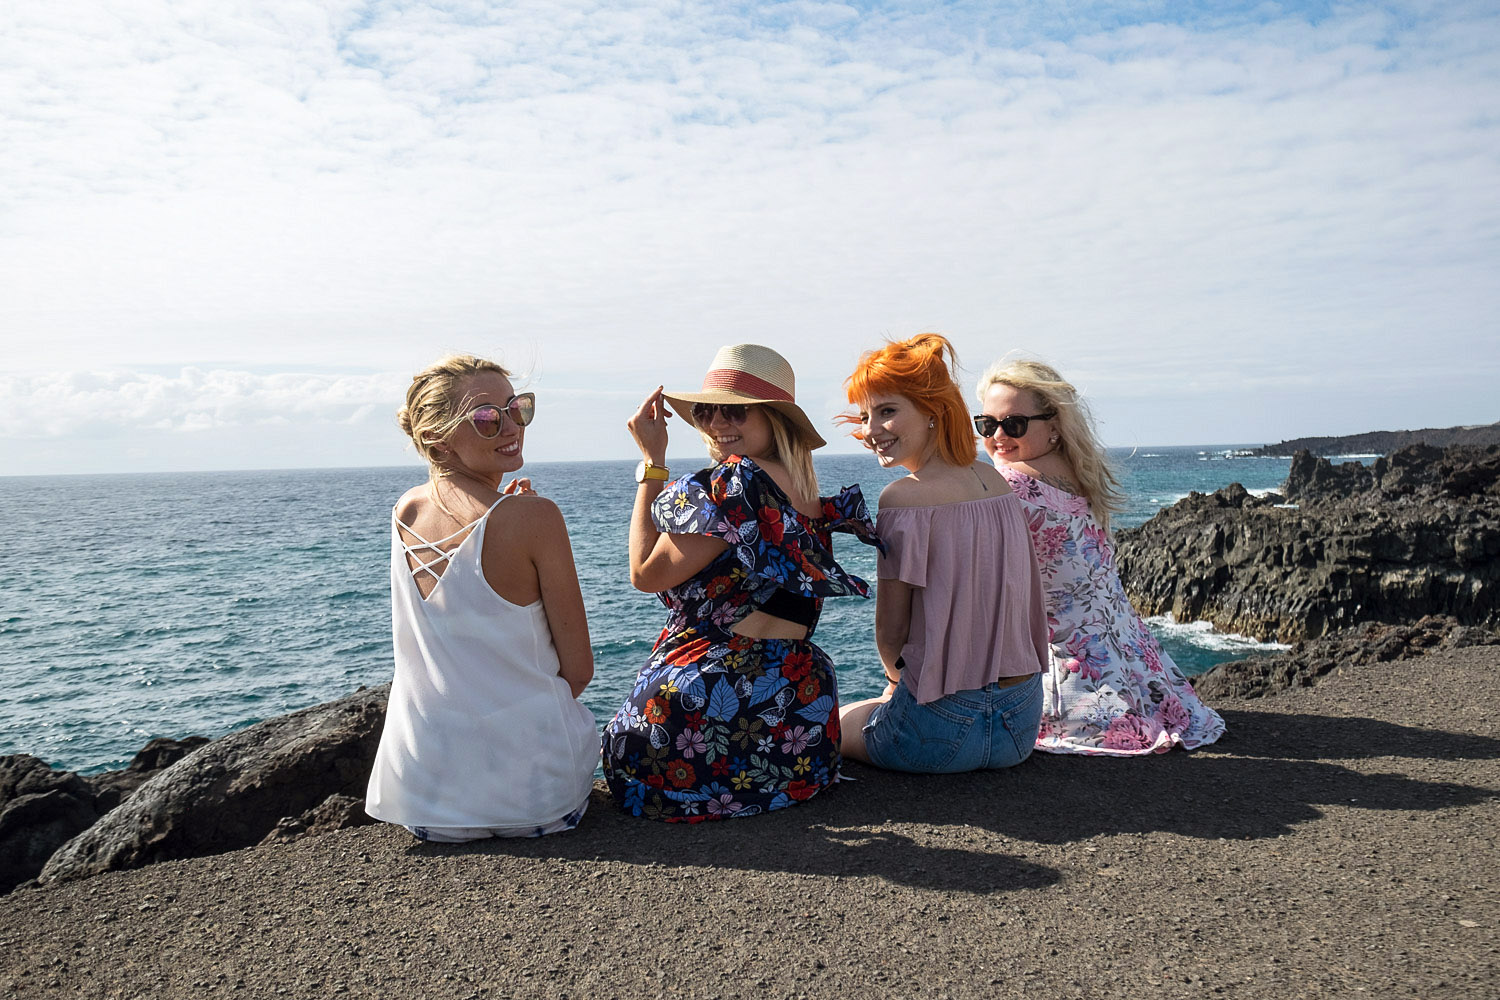 Girls on holiday in Lanzarote, Canary Islands